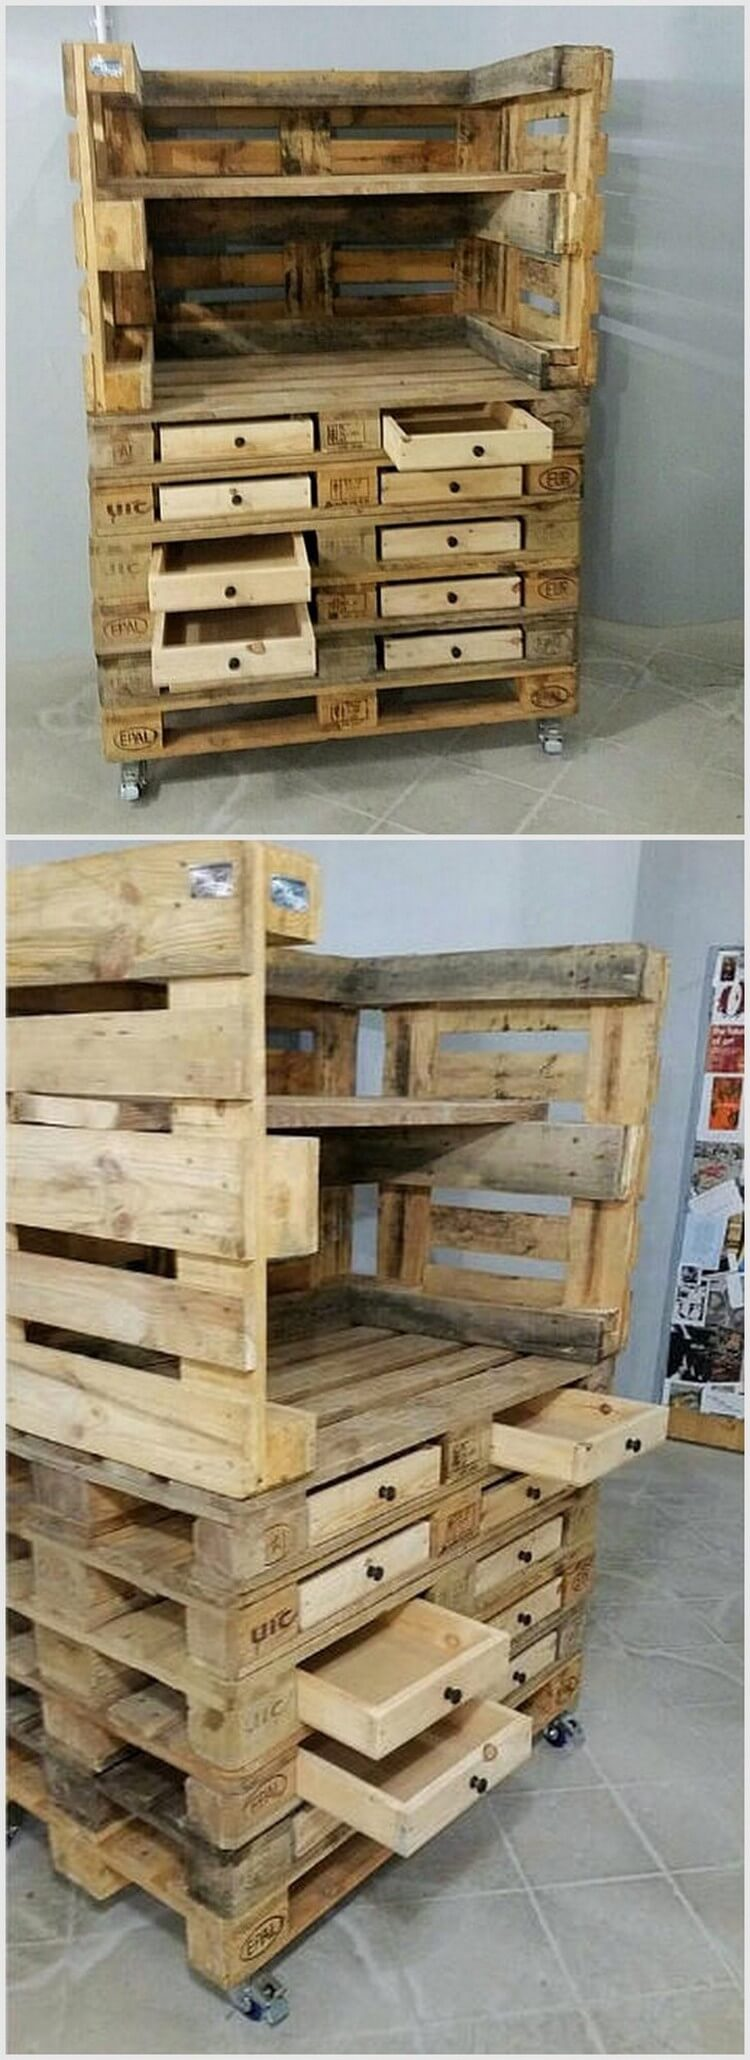 Few ideas about recycling wooden pallets pallet wood Pallet ideas